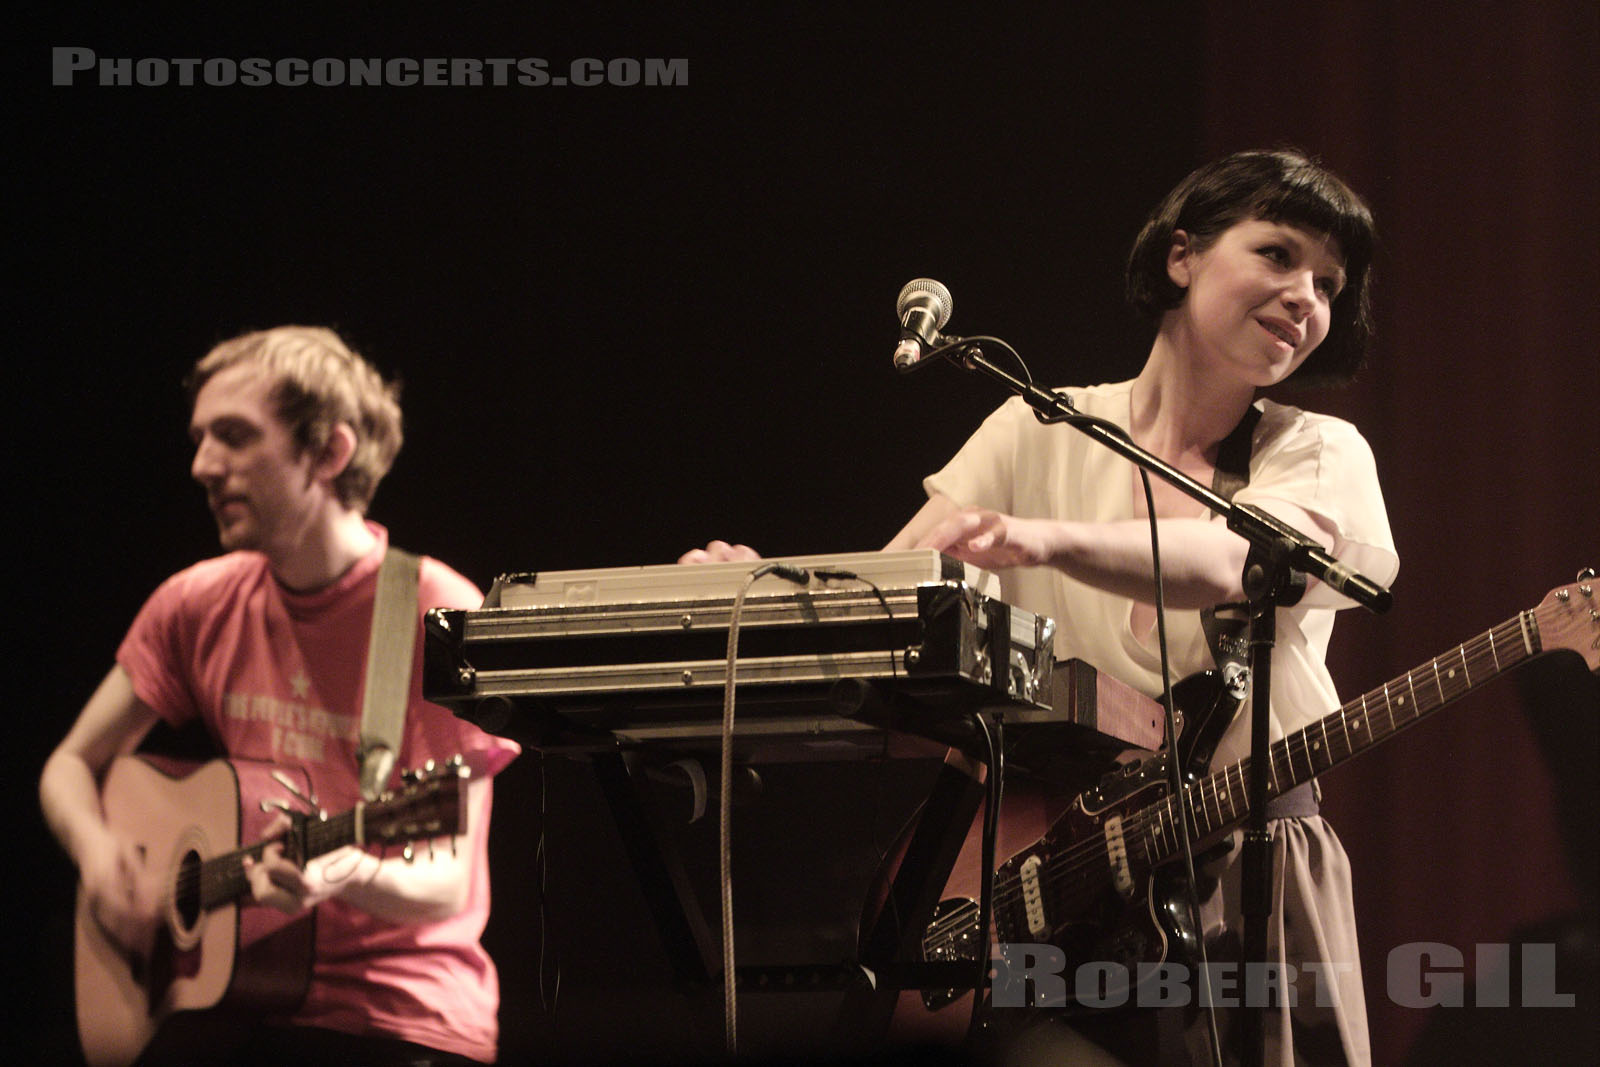 ZOEY VAN GOEY - 2011-04-11 - PARIS - Grand Rex